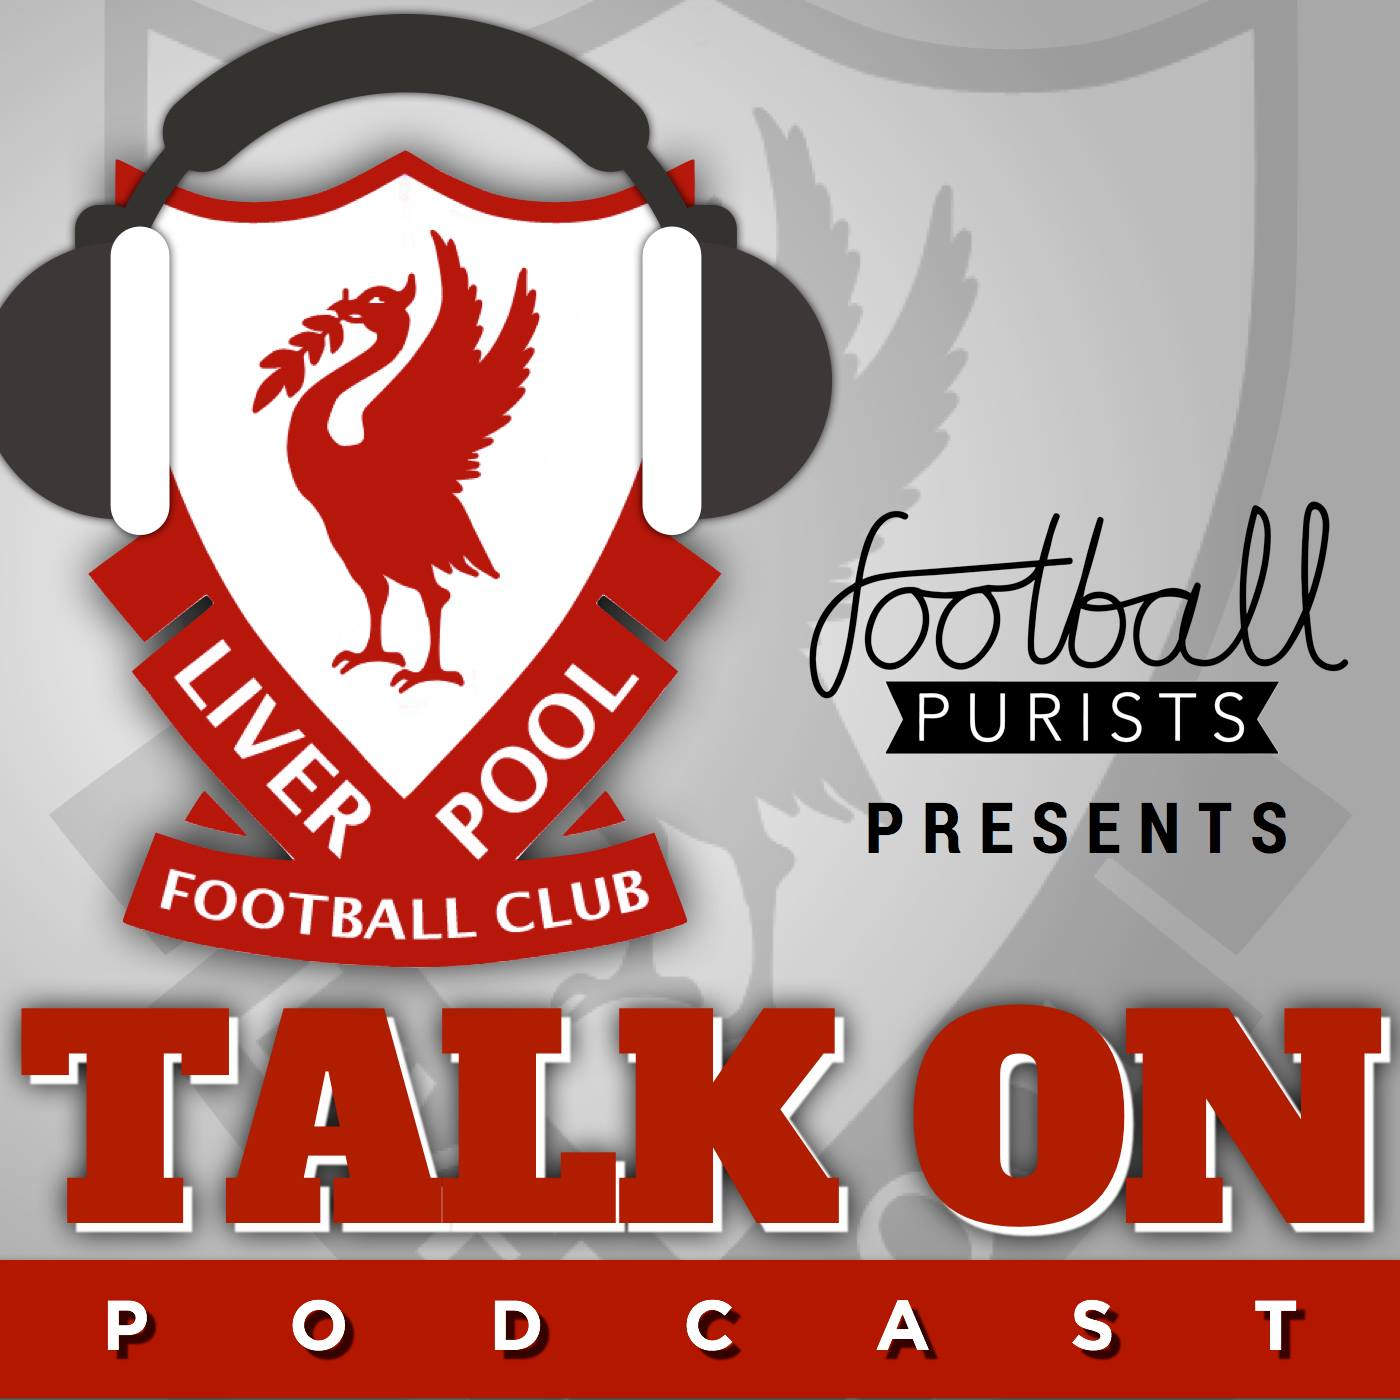 Liverpool-Talk On: Fleetwood (Town) Mac